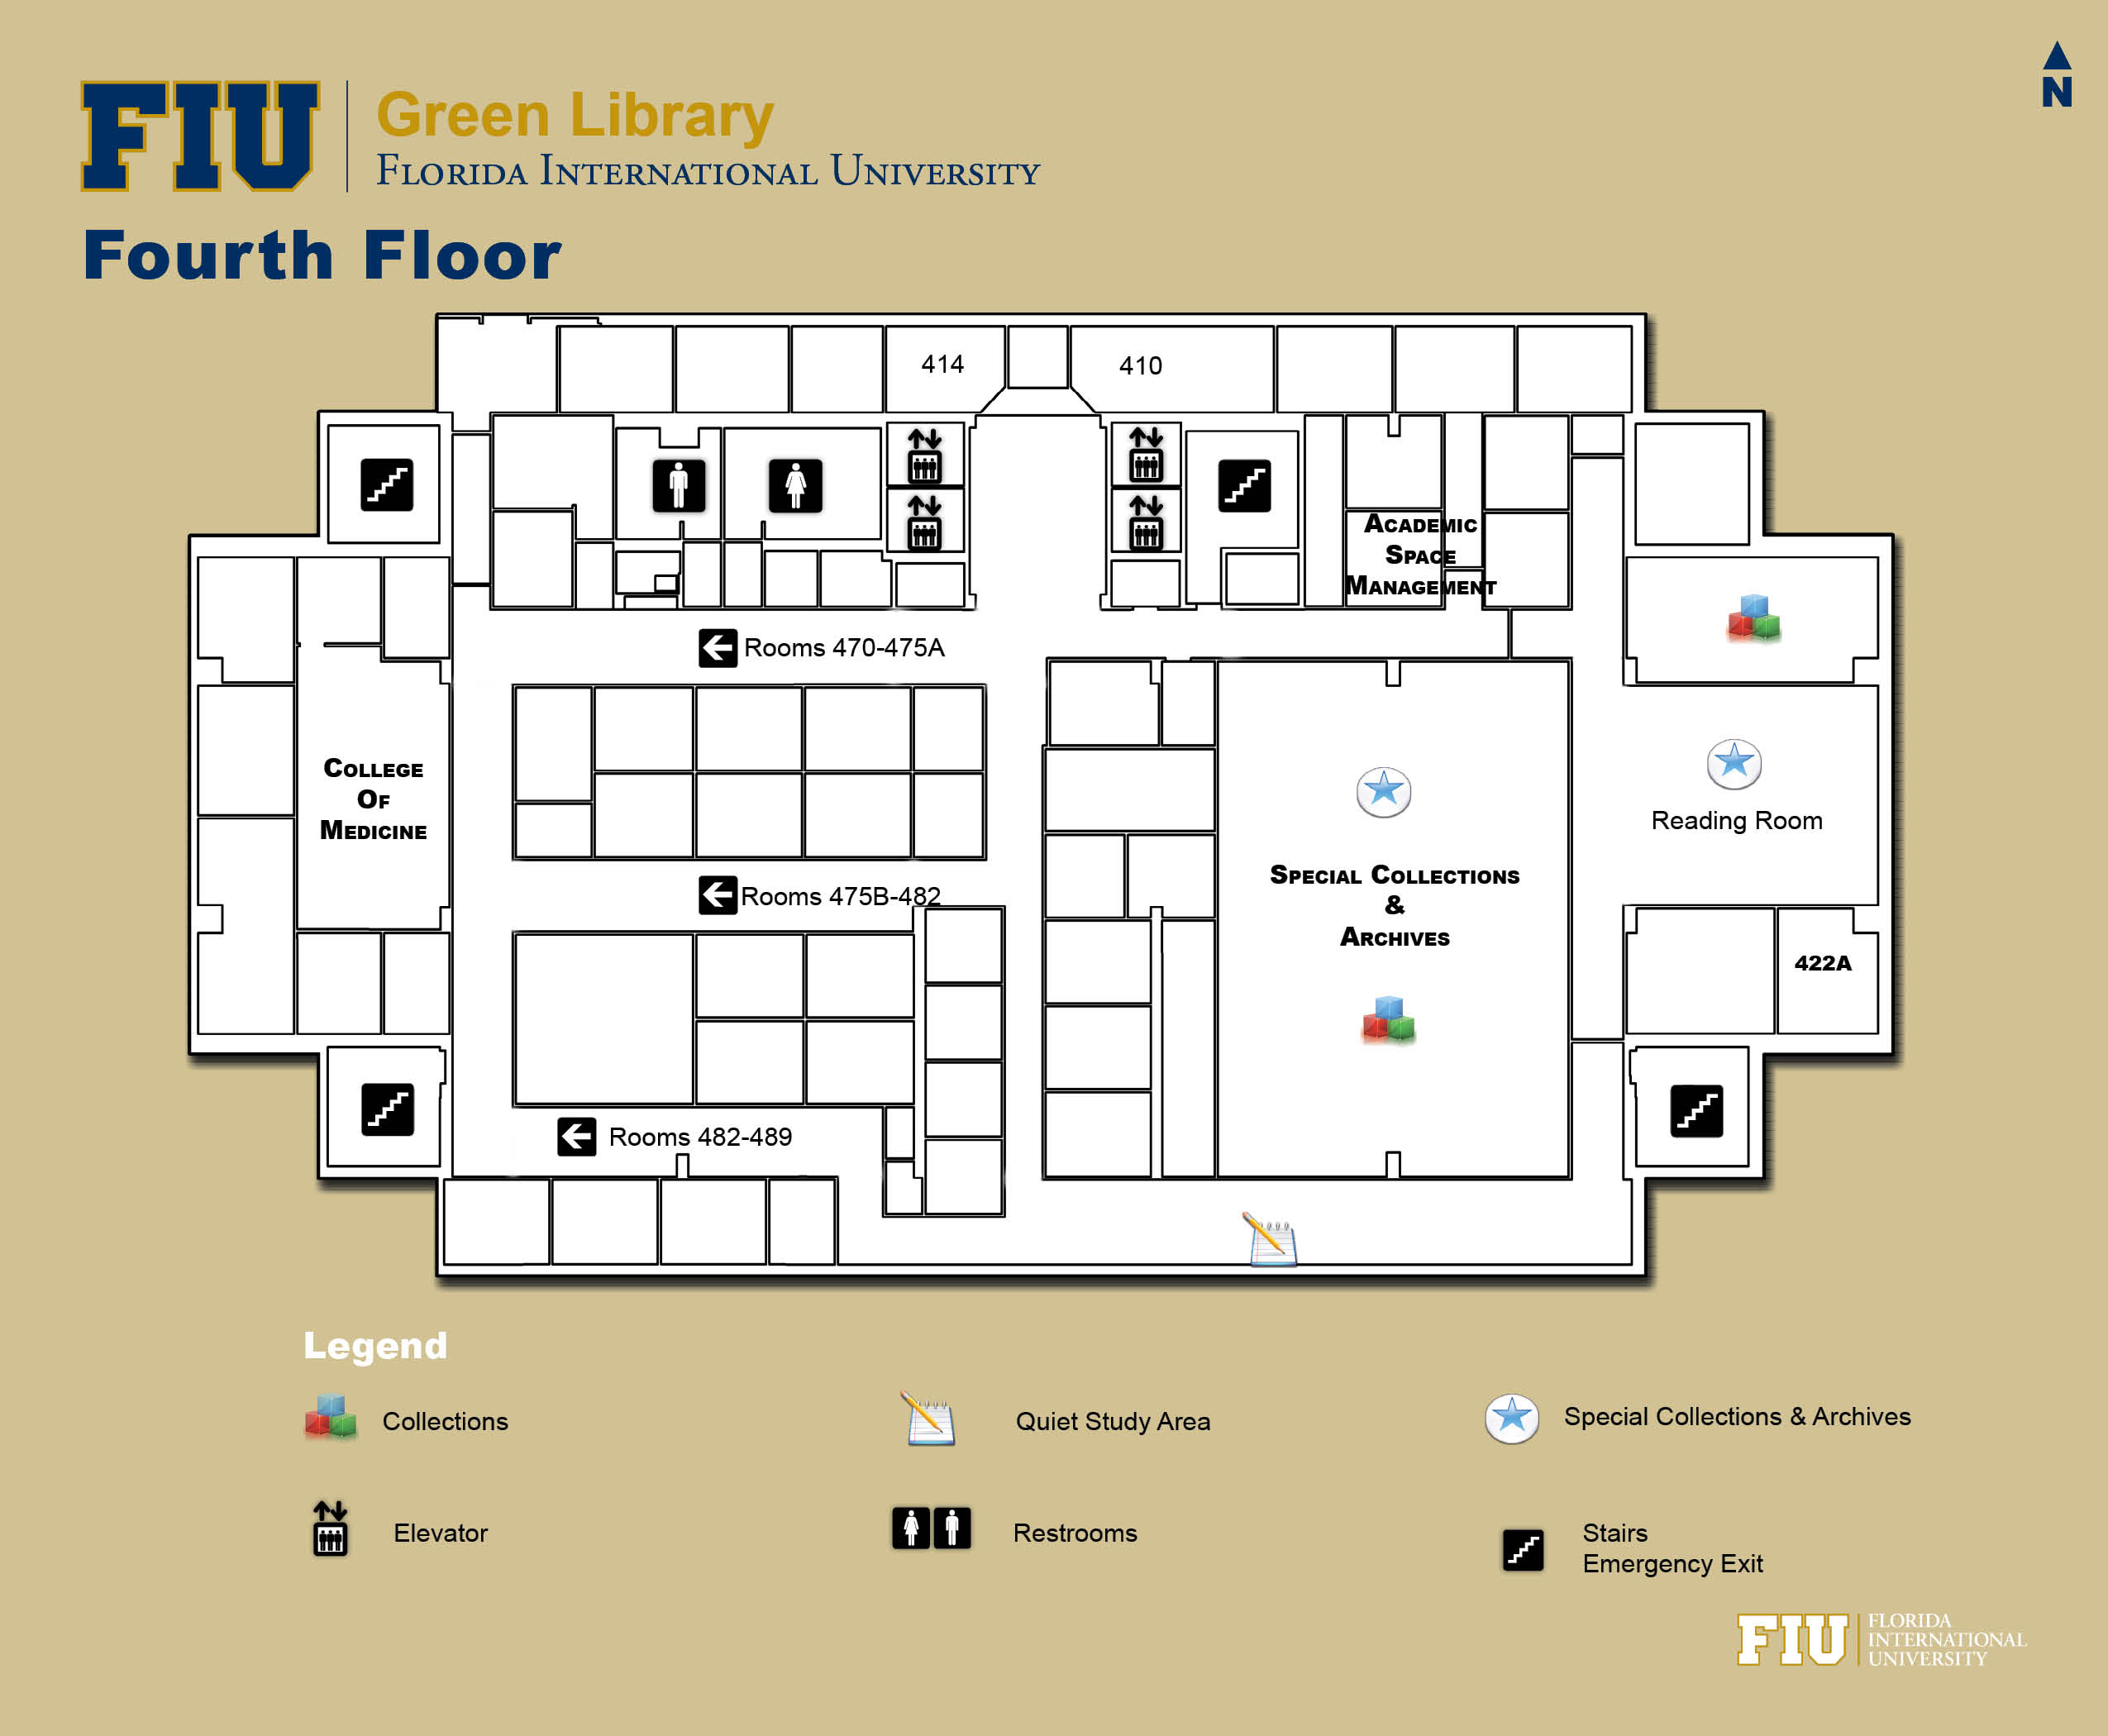 Floorplan for Floor 4 of Green Library